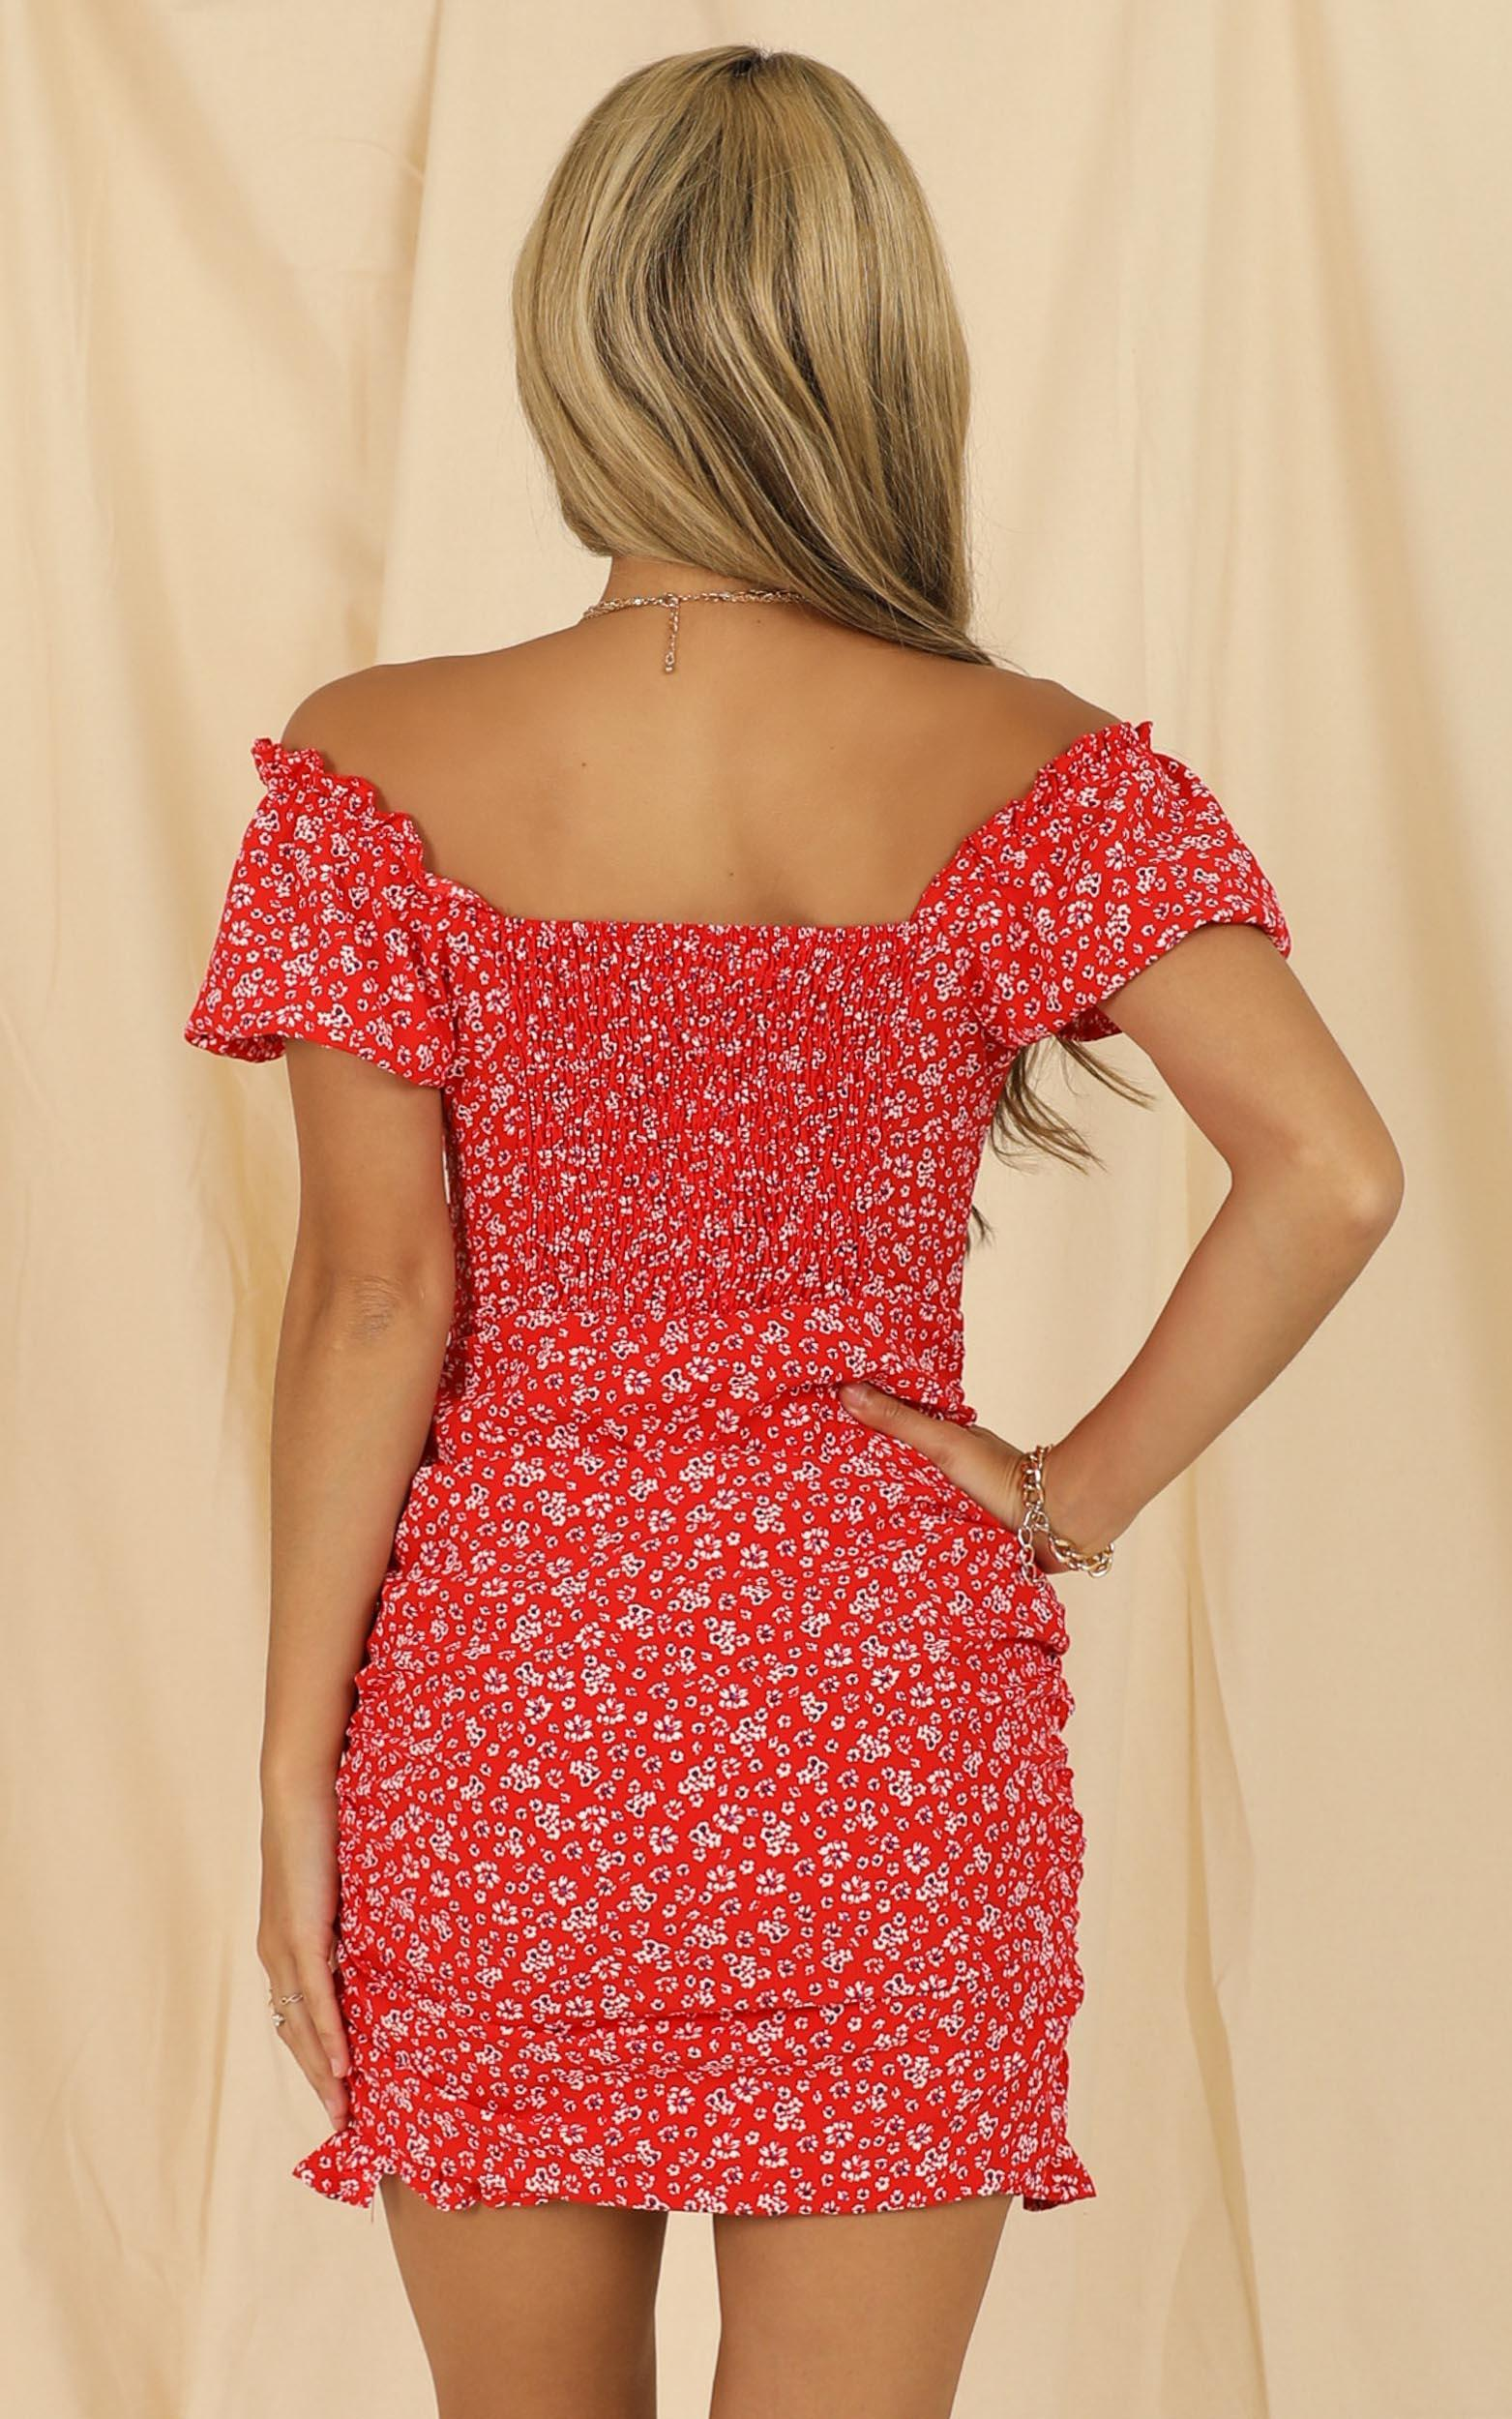 Pick Me First Dress In Red Floral - 16 (XXL), Red, hi-res image number null